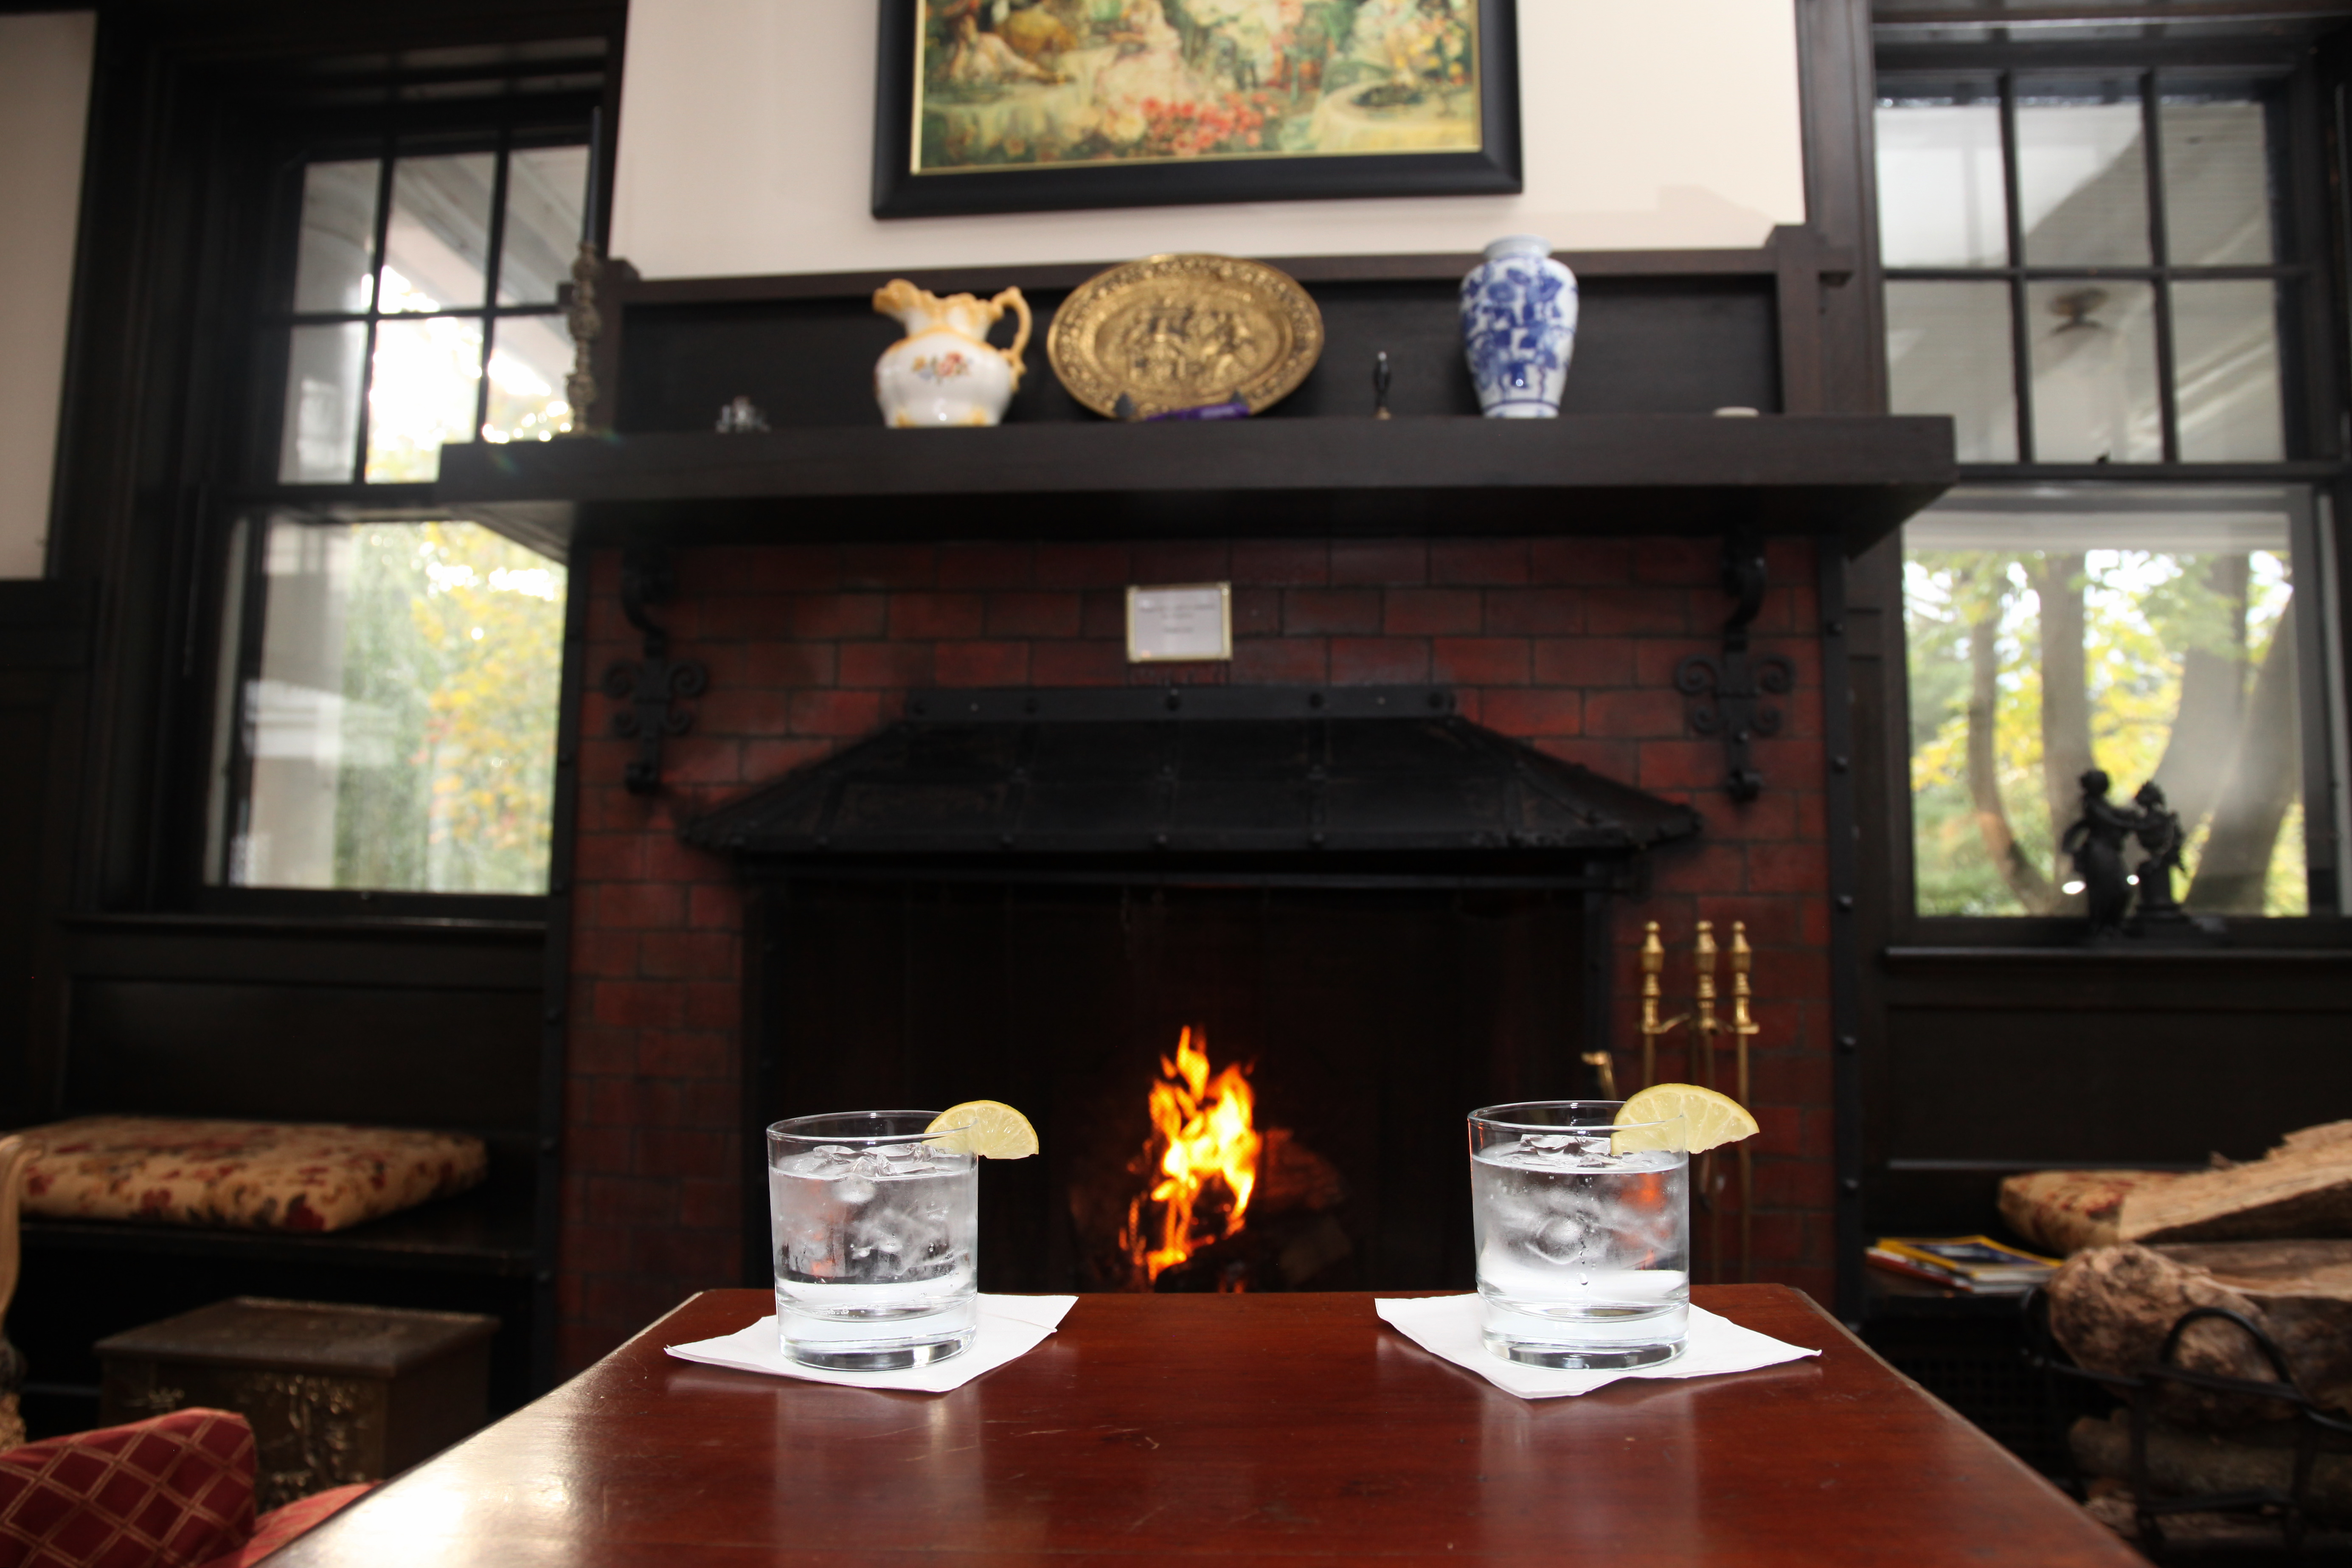 Two glasses of liquor on a table in front of the fireplace at the bar